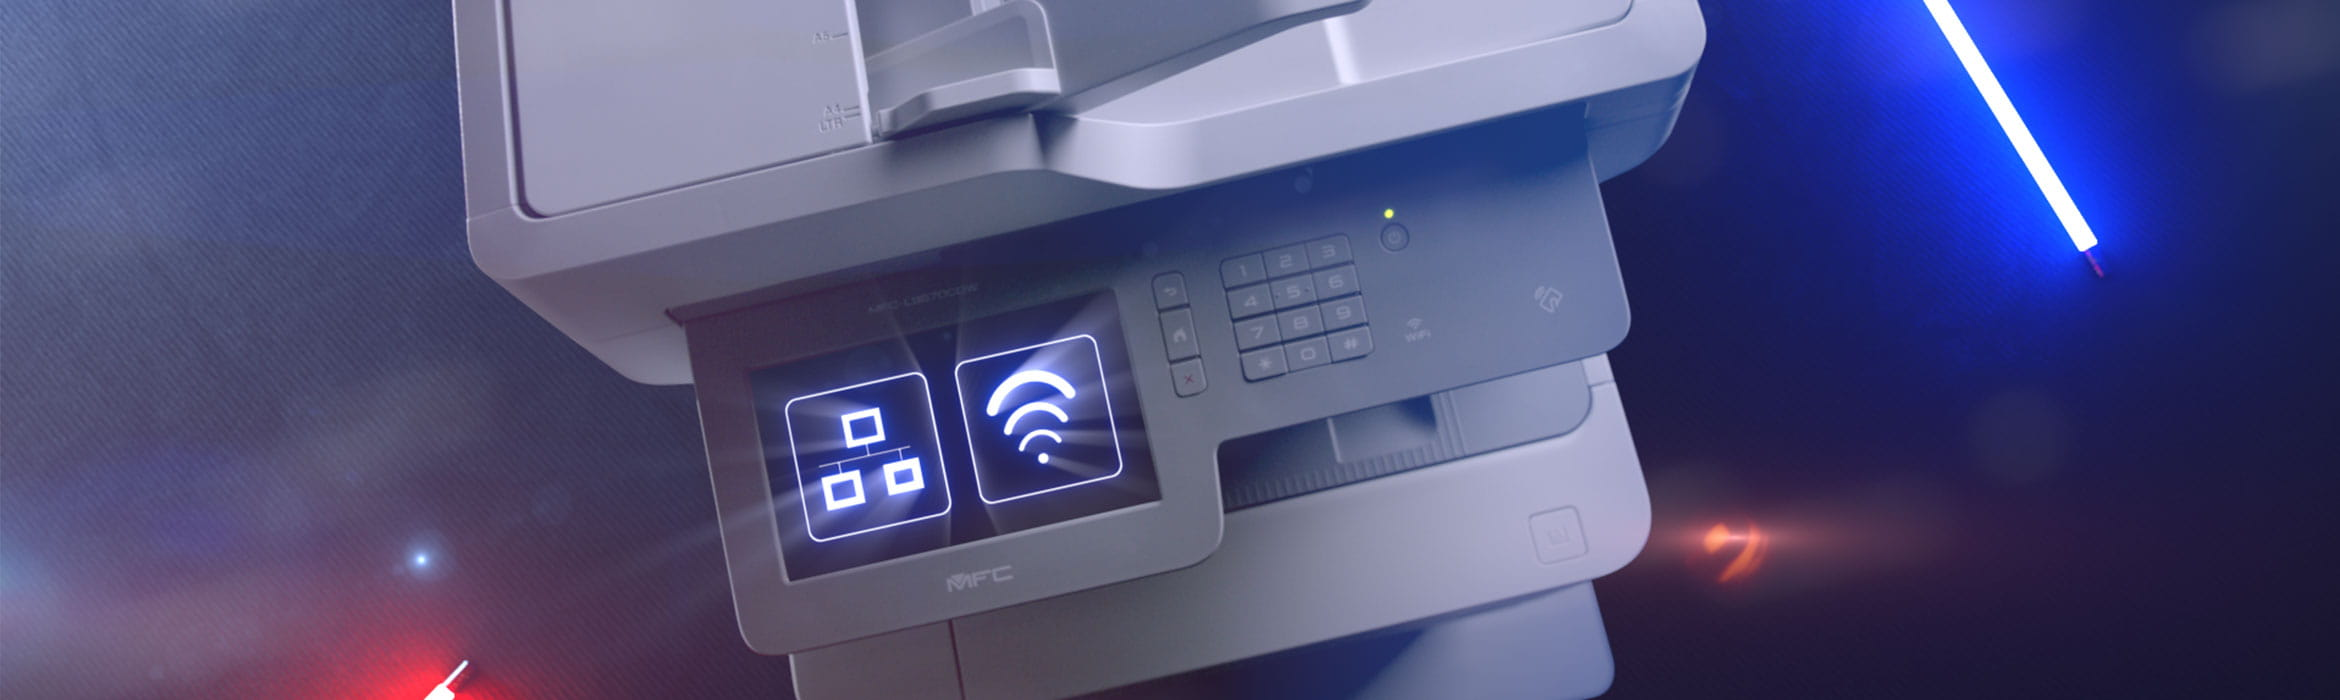 Productivity boost from a Brother designed for business printer